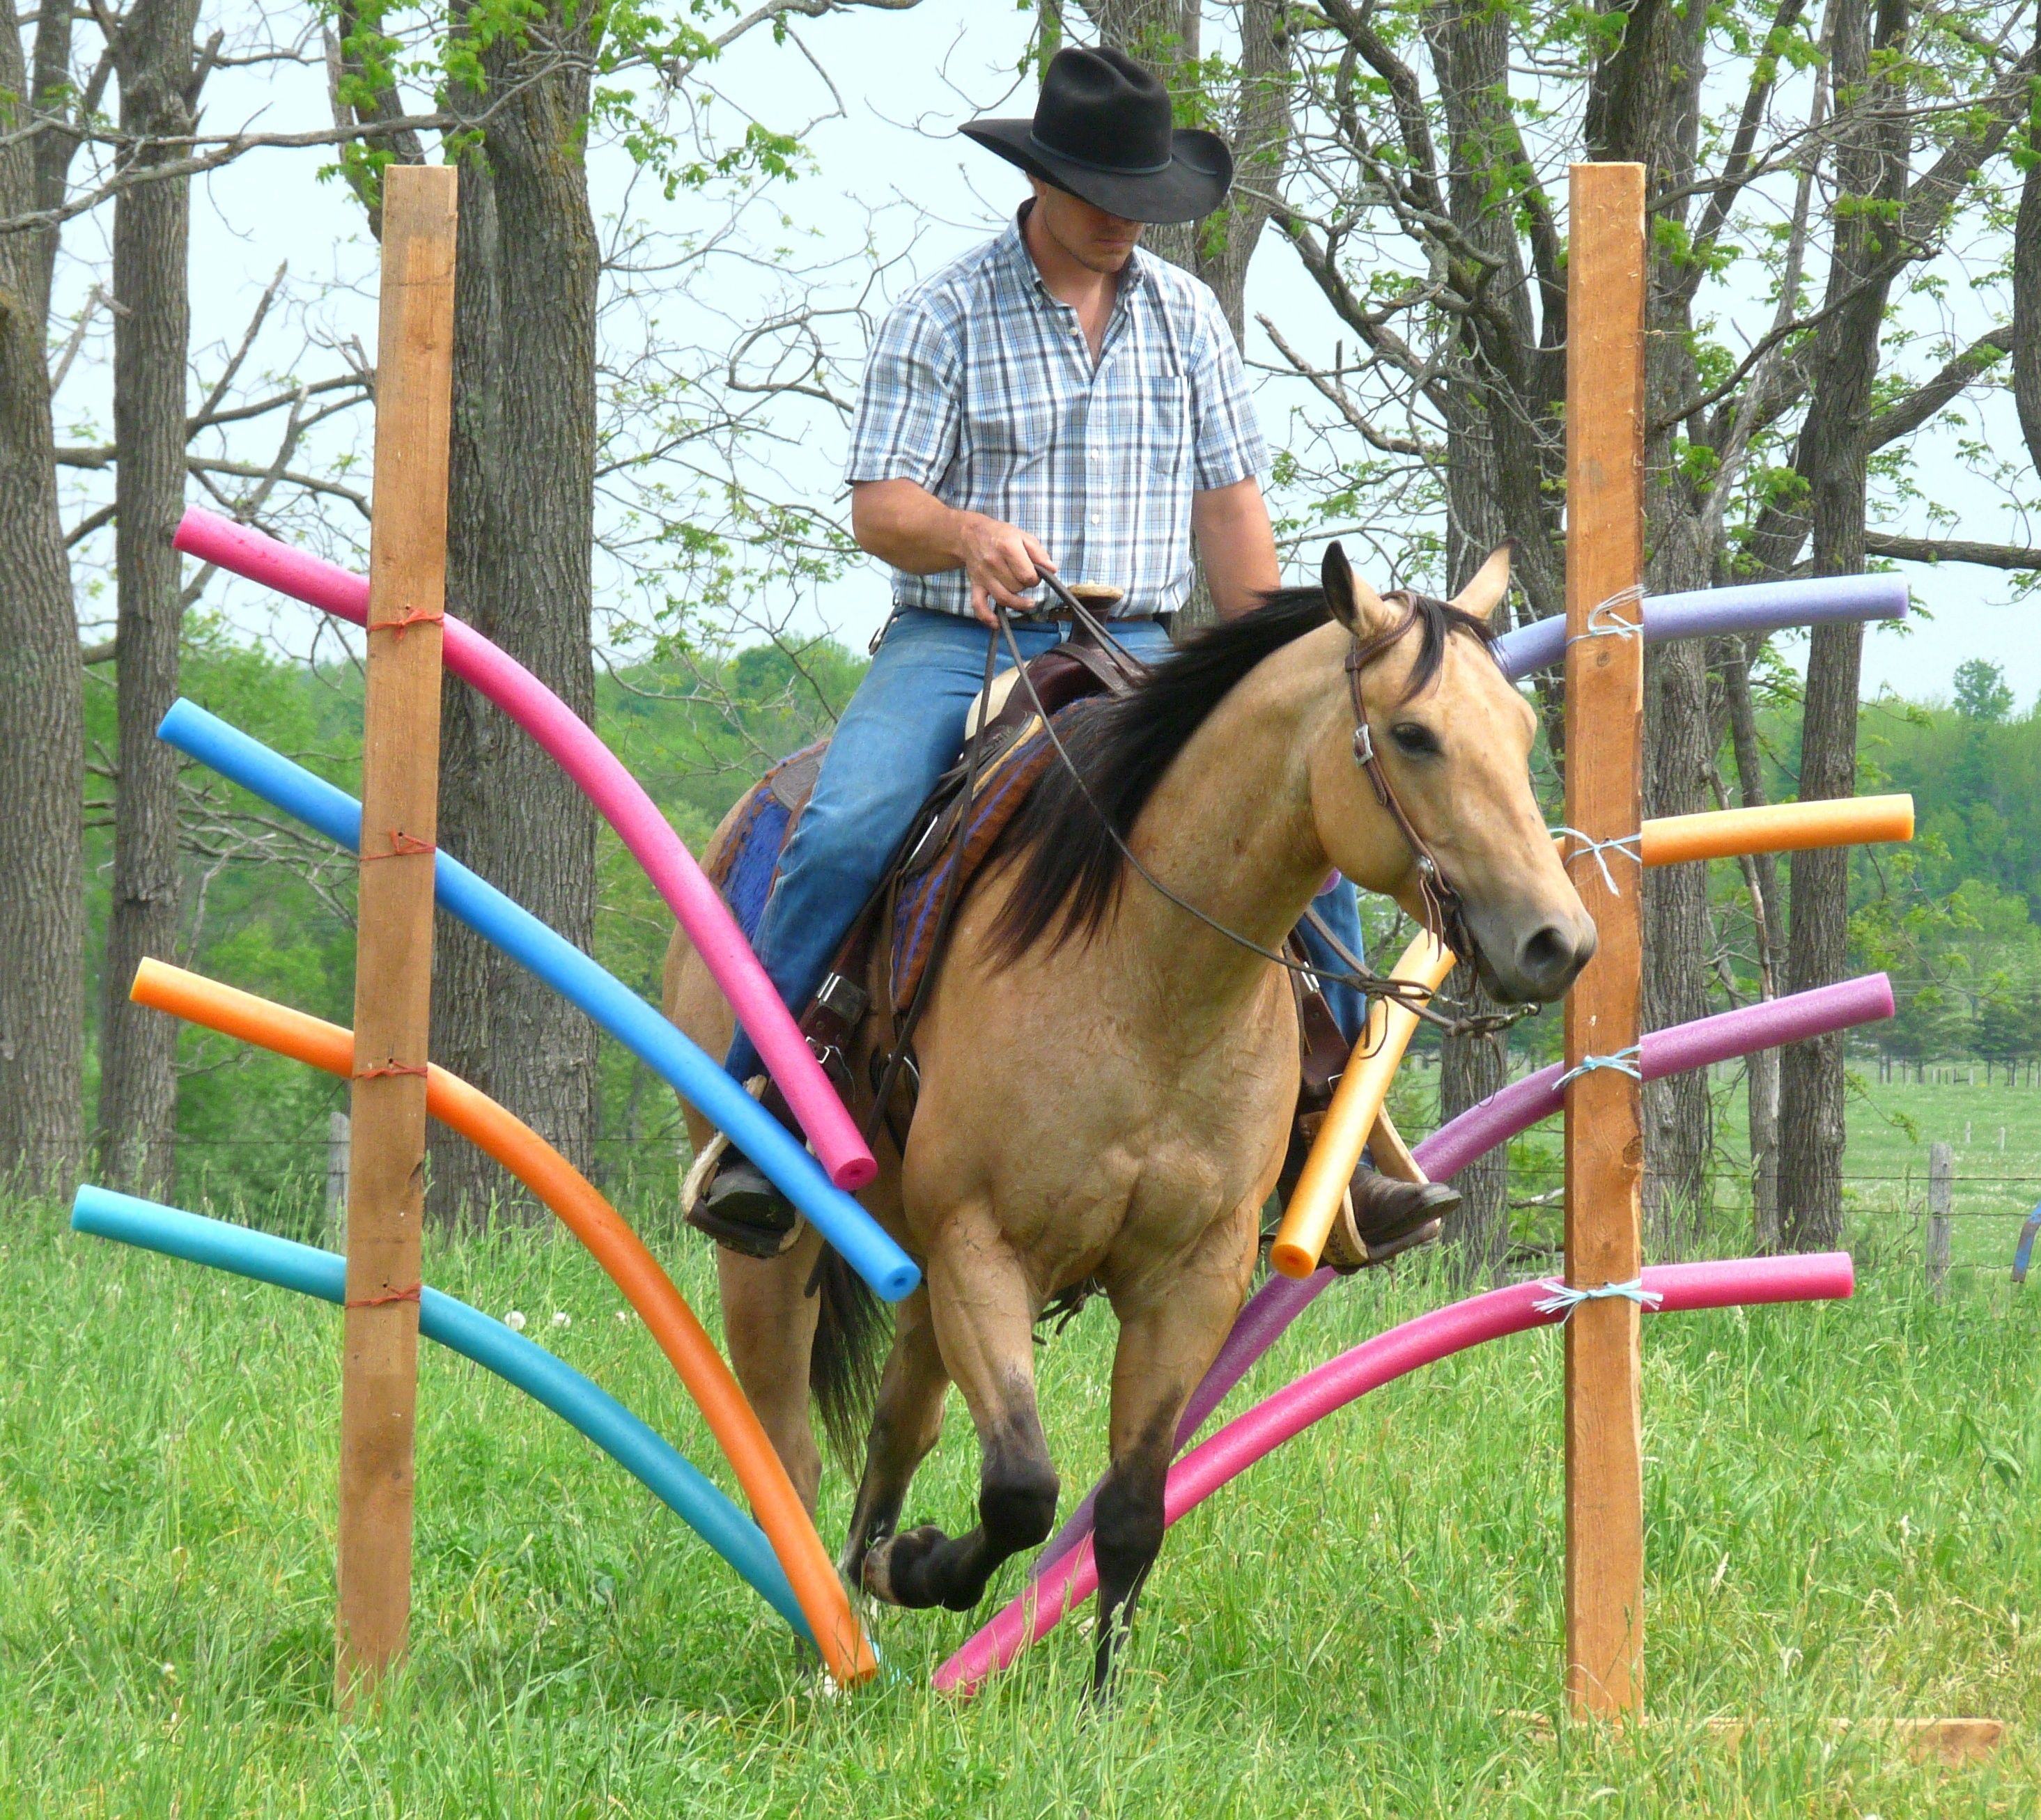 Diy horse training aid pool noodles i want to make this in the diy horse training aid pool noodles i want to make this in the summer baditri Image collections